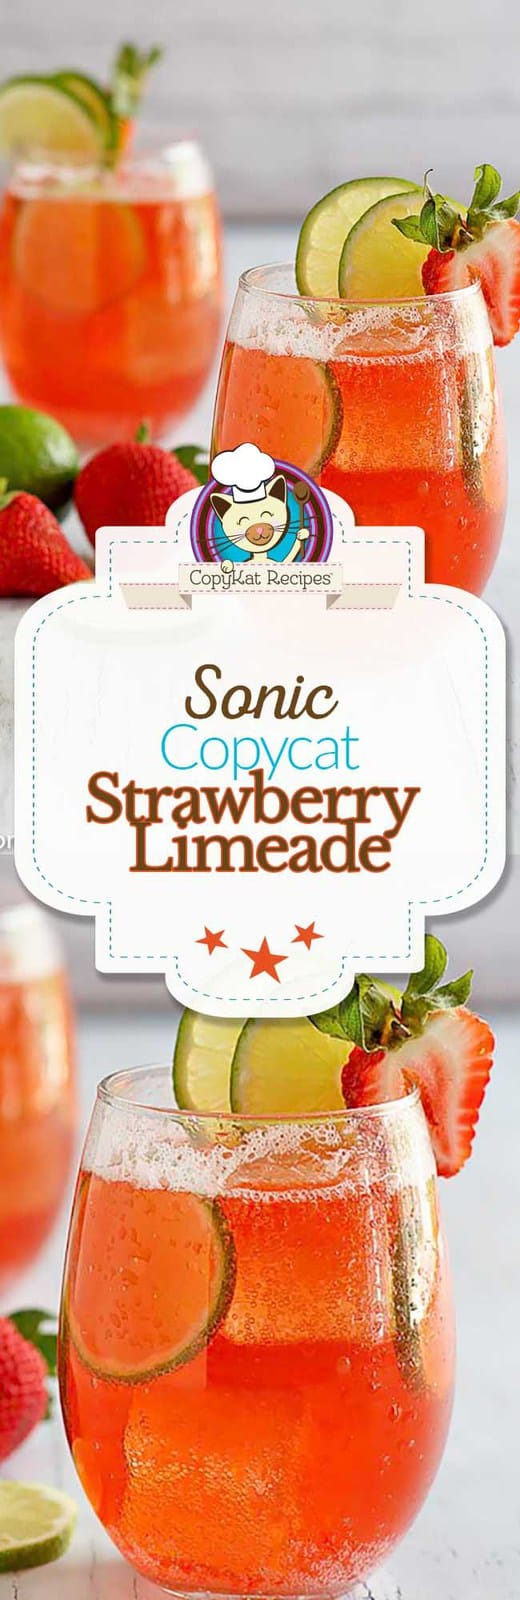 You can recreate the Sonic Strawberry Limeade at home with this easy copycat recipe.